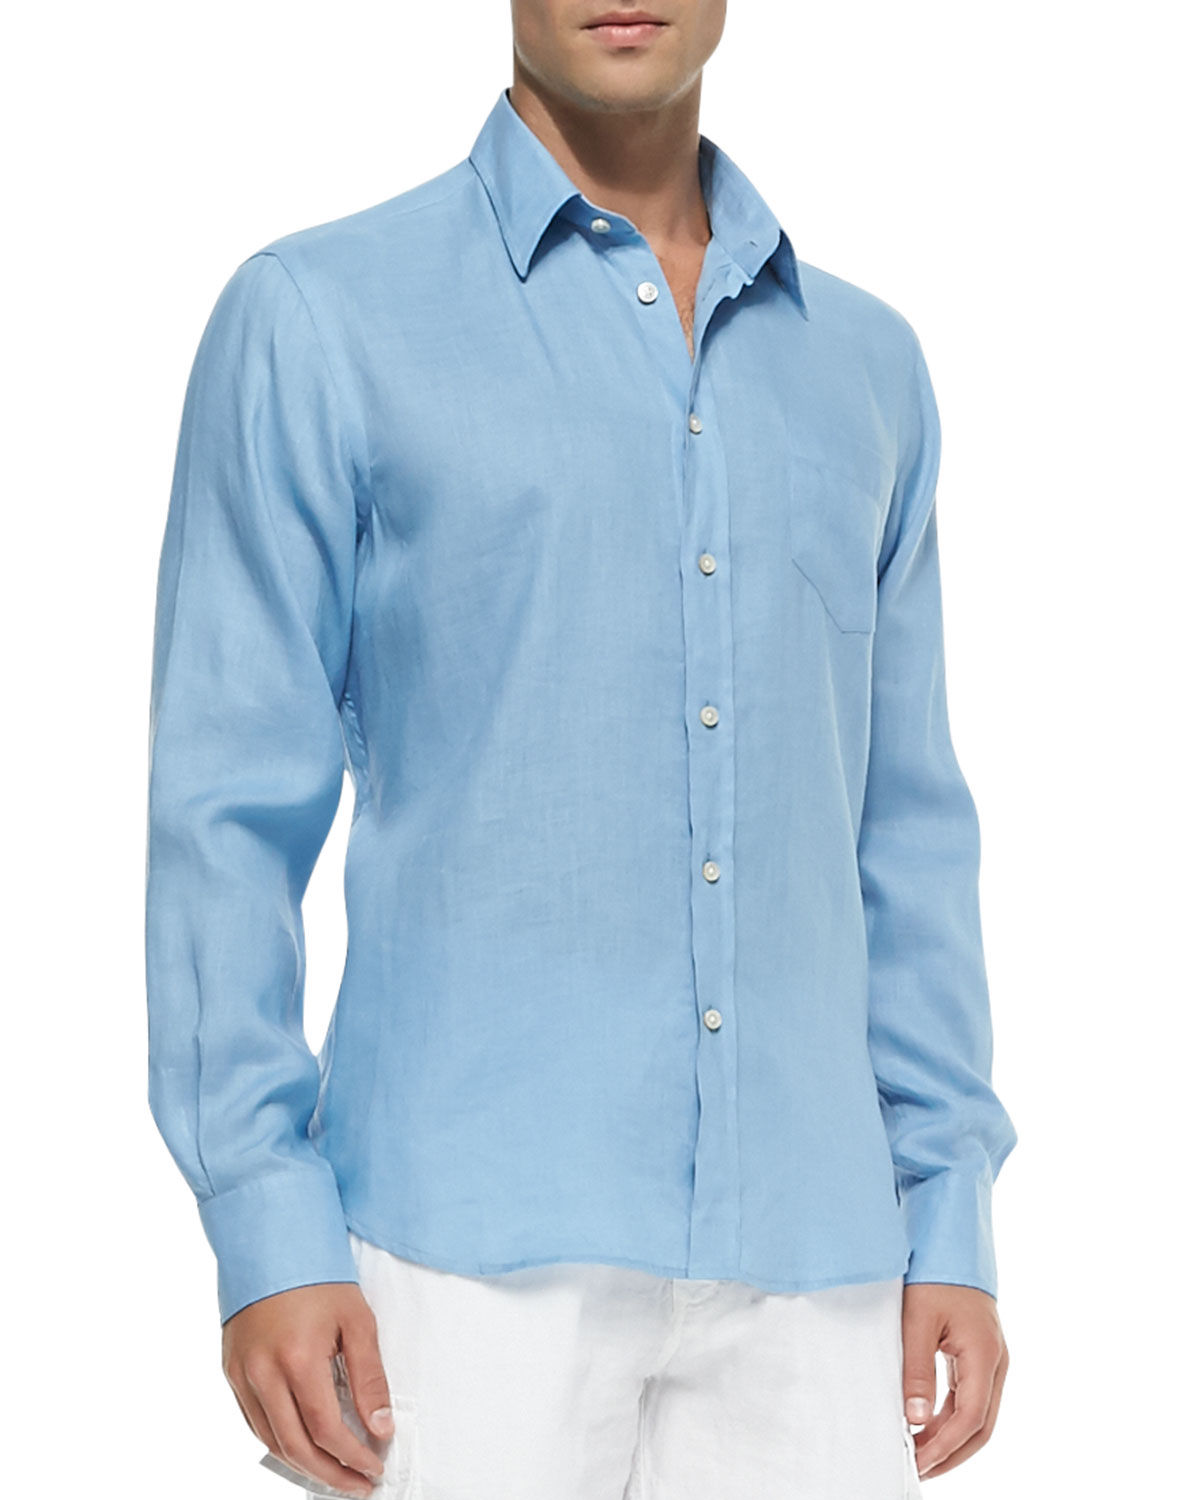 Mens Linen Long Sleeve Shirt, Lt. Blue   Vilebrequin   Skyblu (XX LARGE)